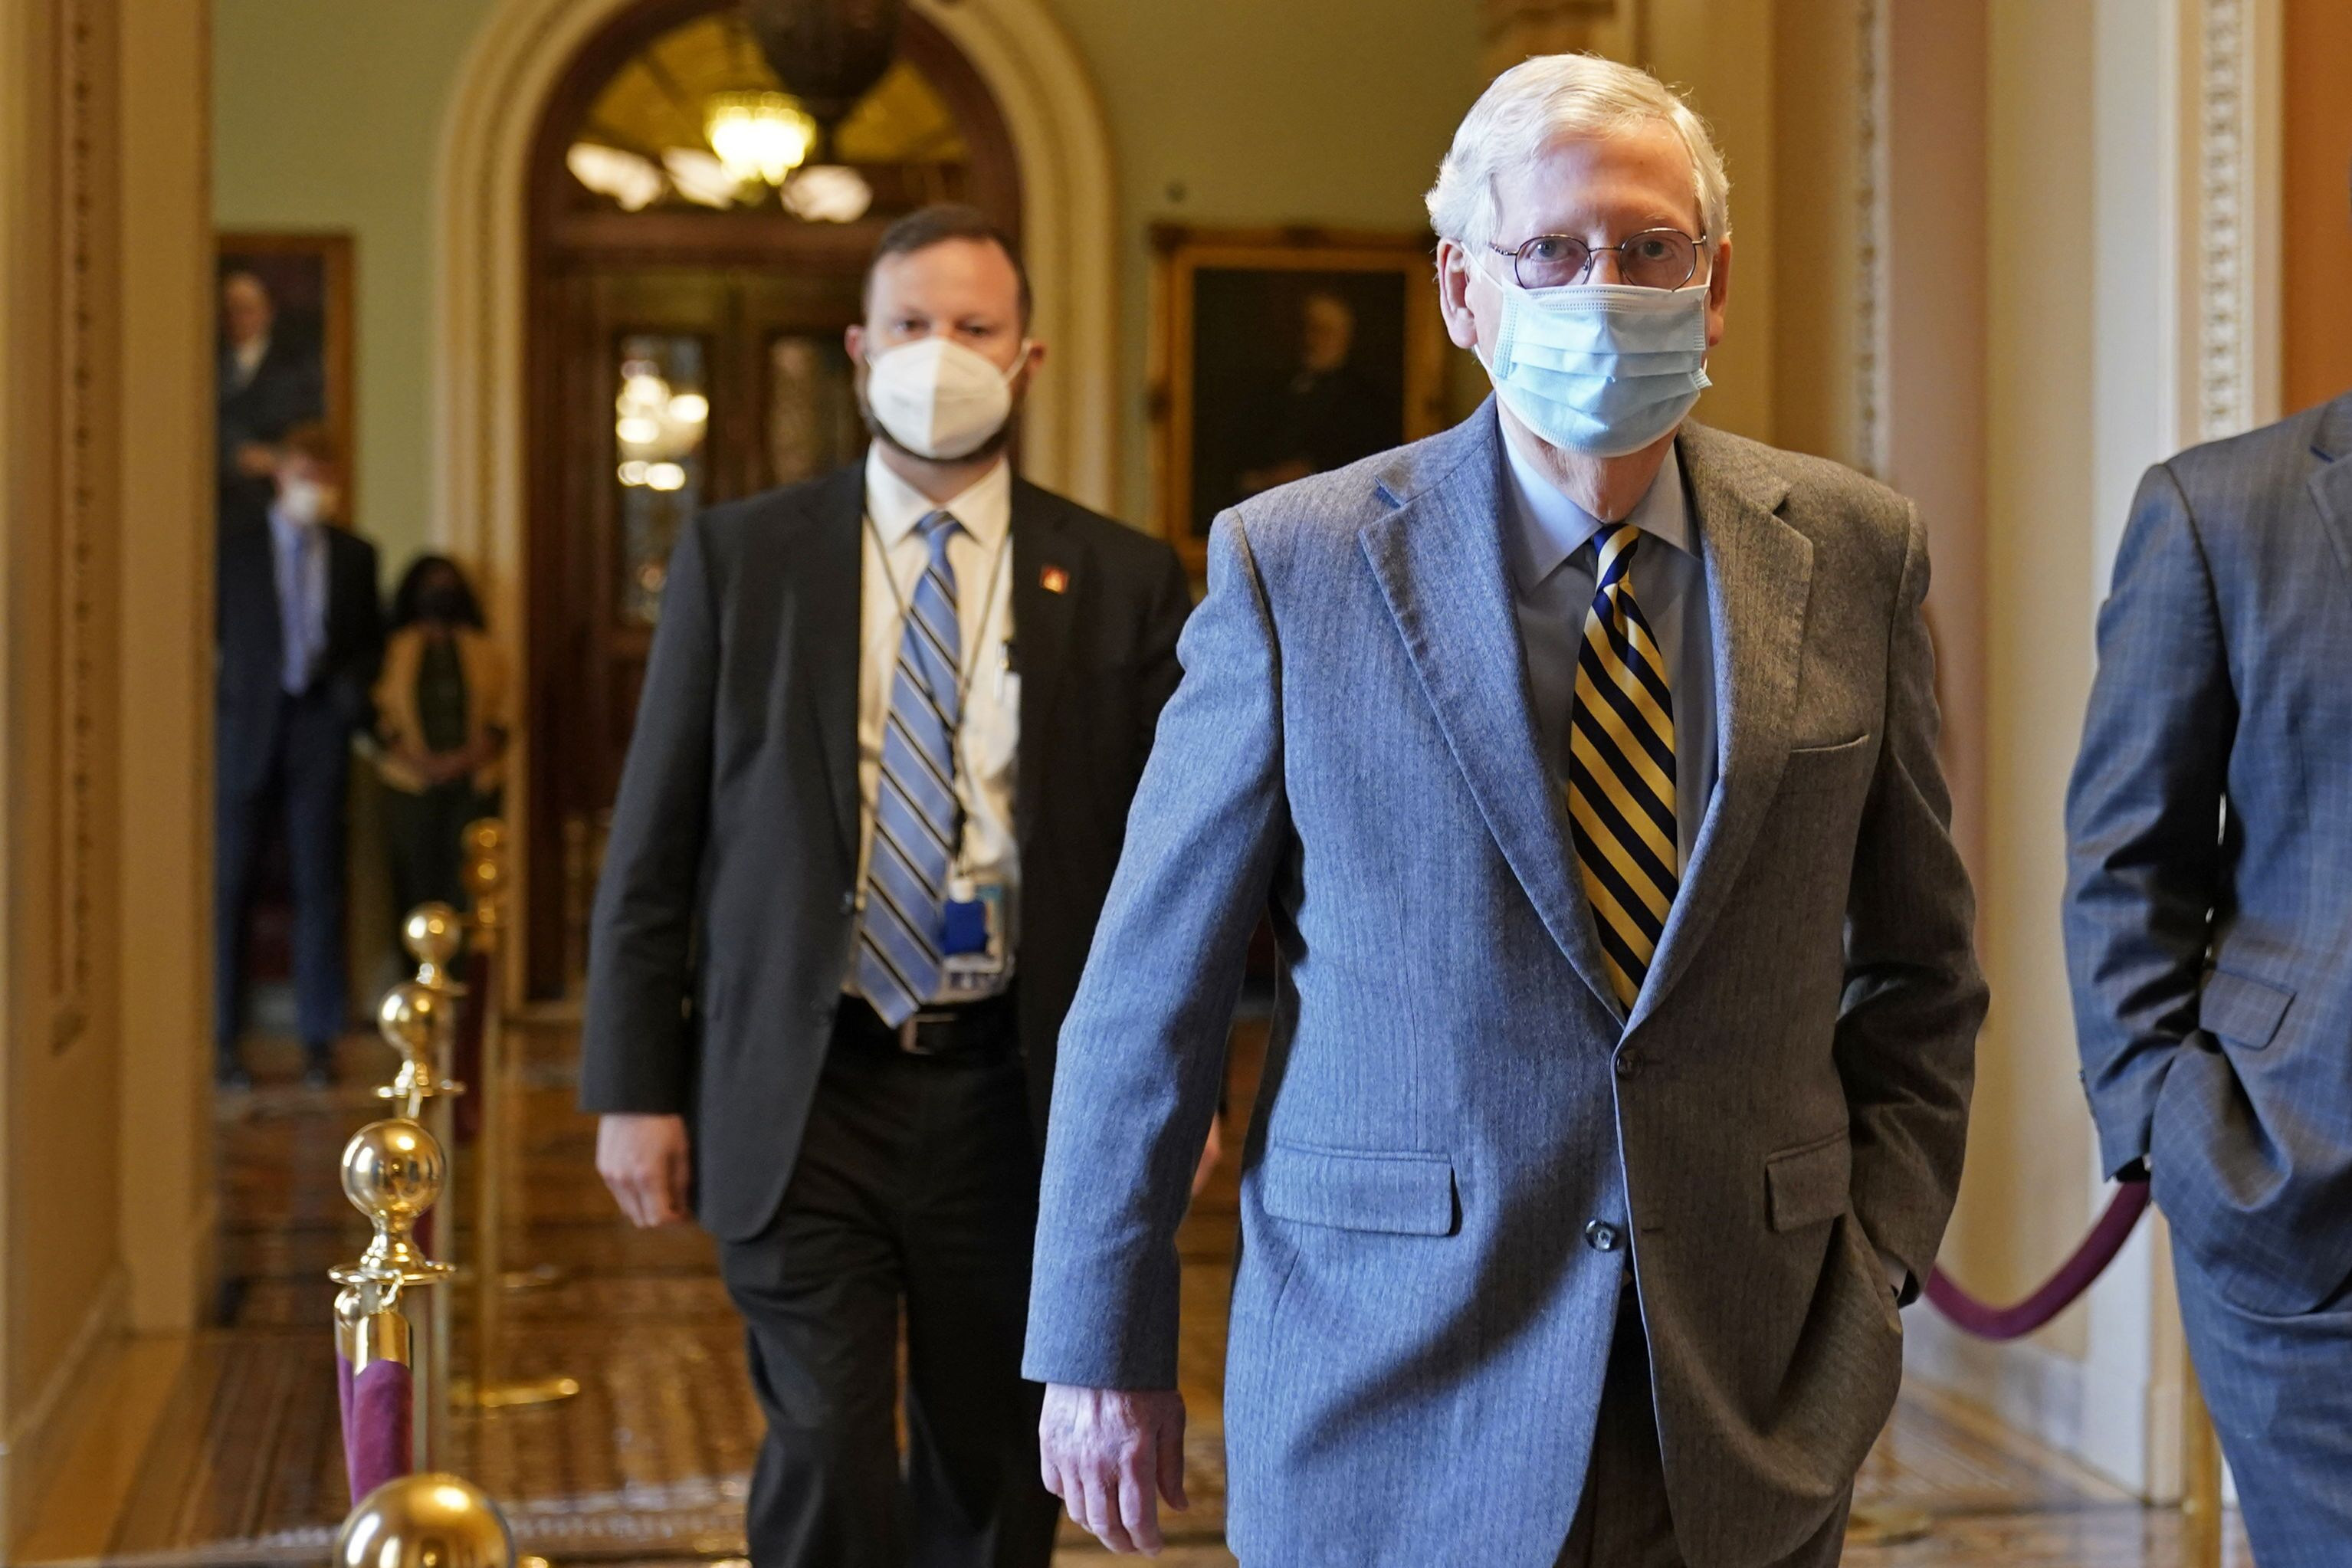 Senate Majority Leader Mitch McConnell of Ky., walks back to his office on Capitol Hill in Washington, Wednesday, Dec. 30, 2020